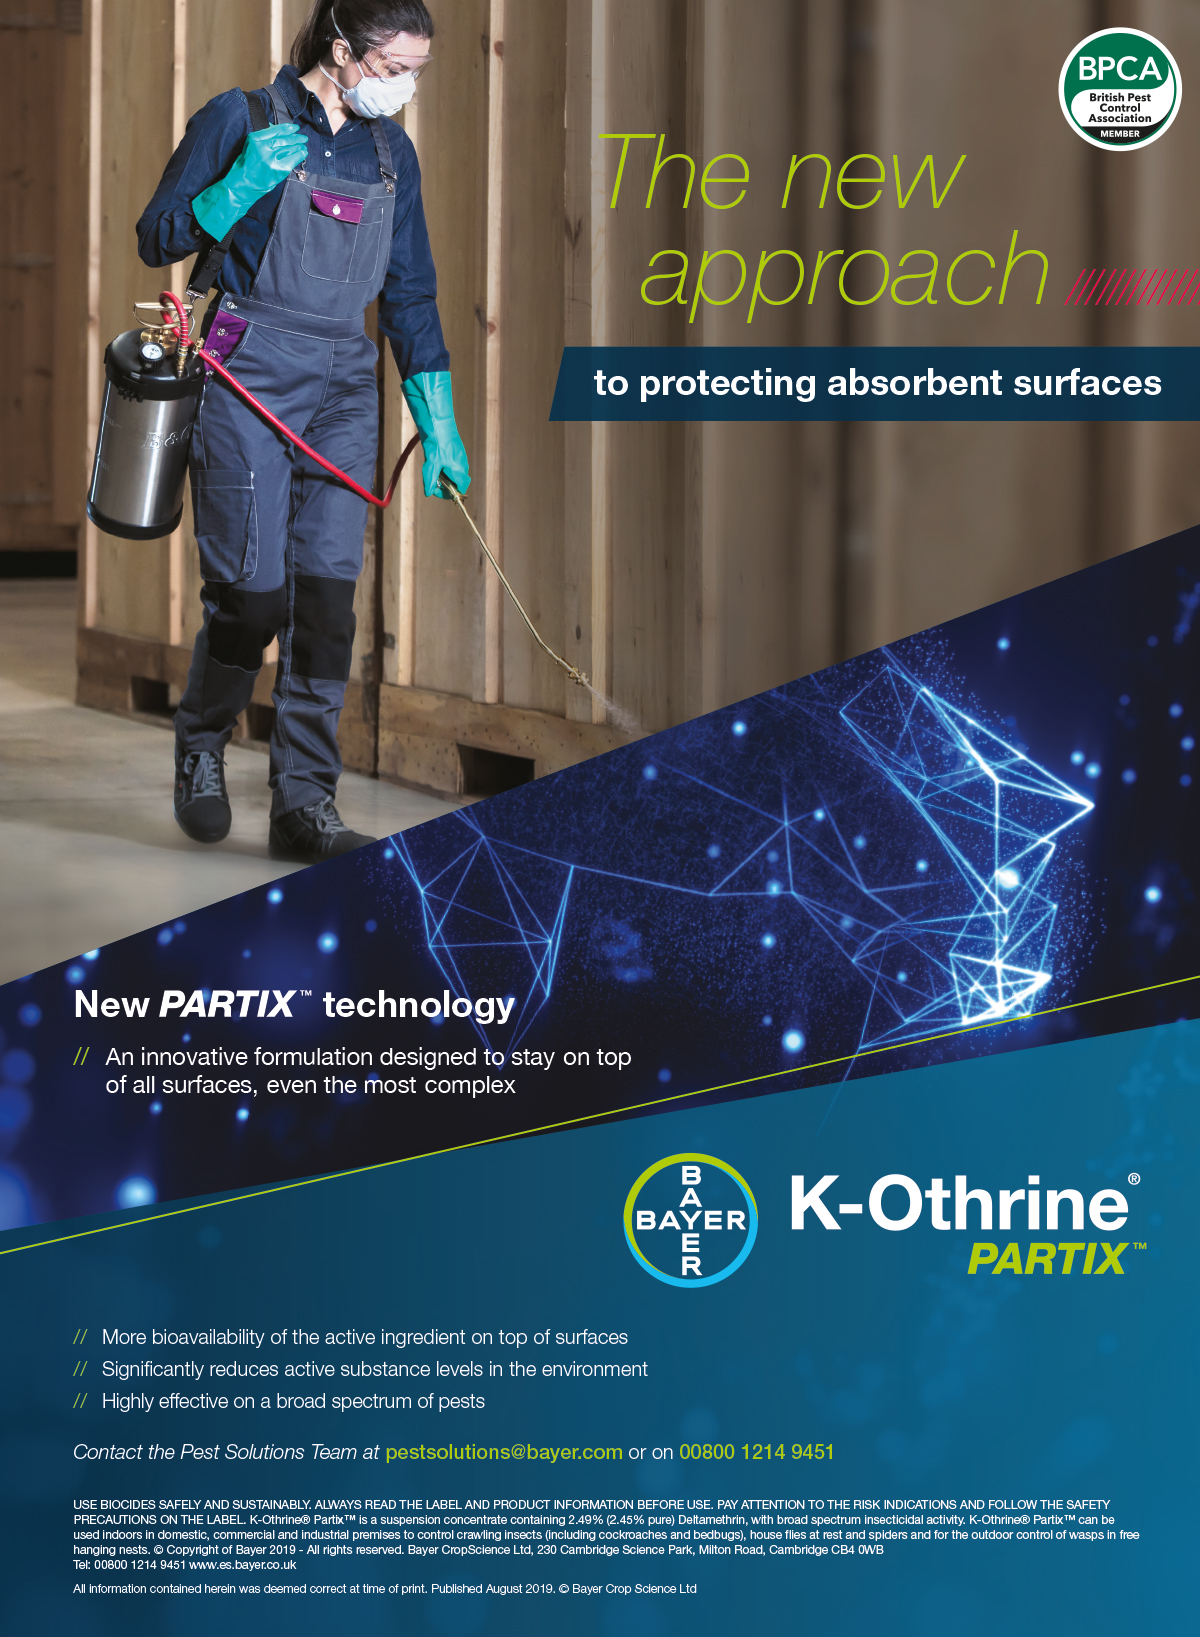 Bayer K-othrine Partix advert PPC96